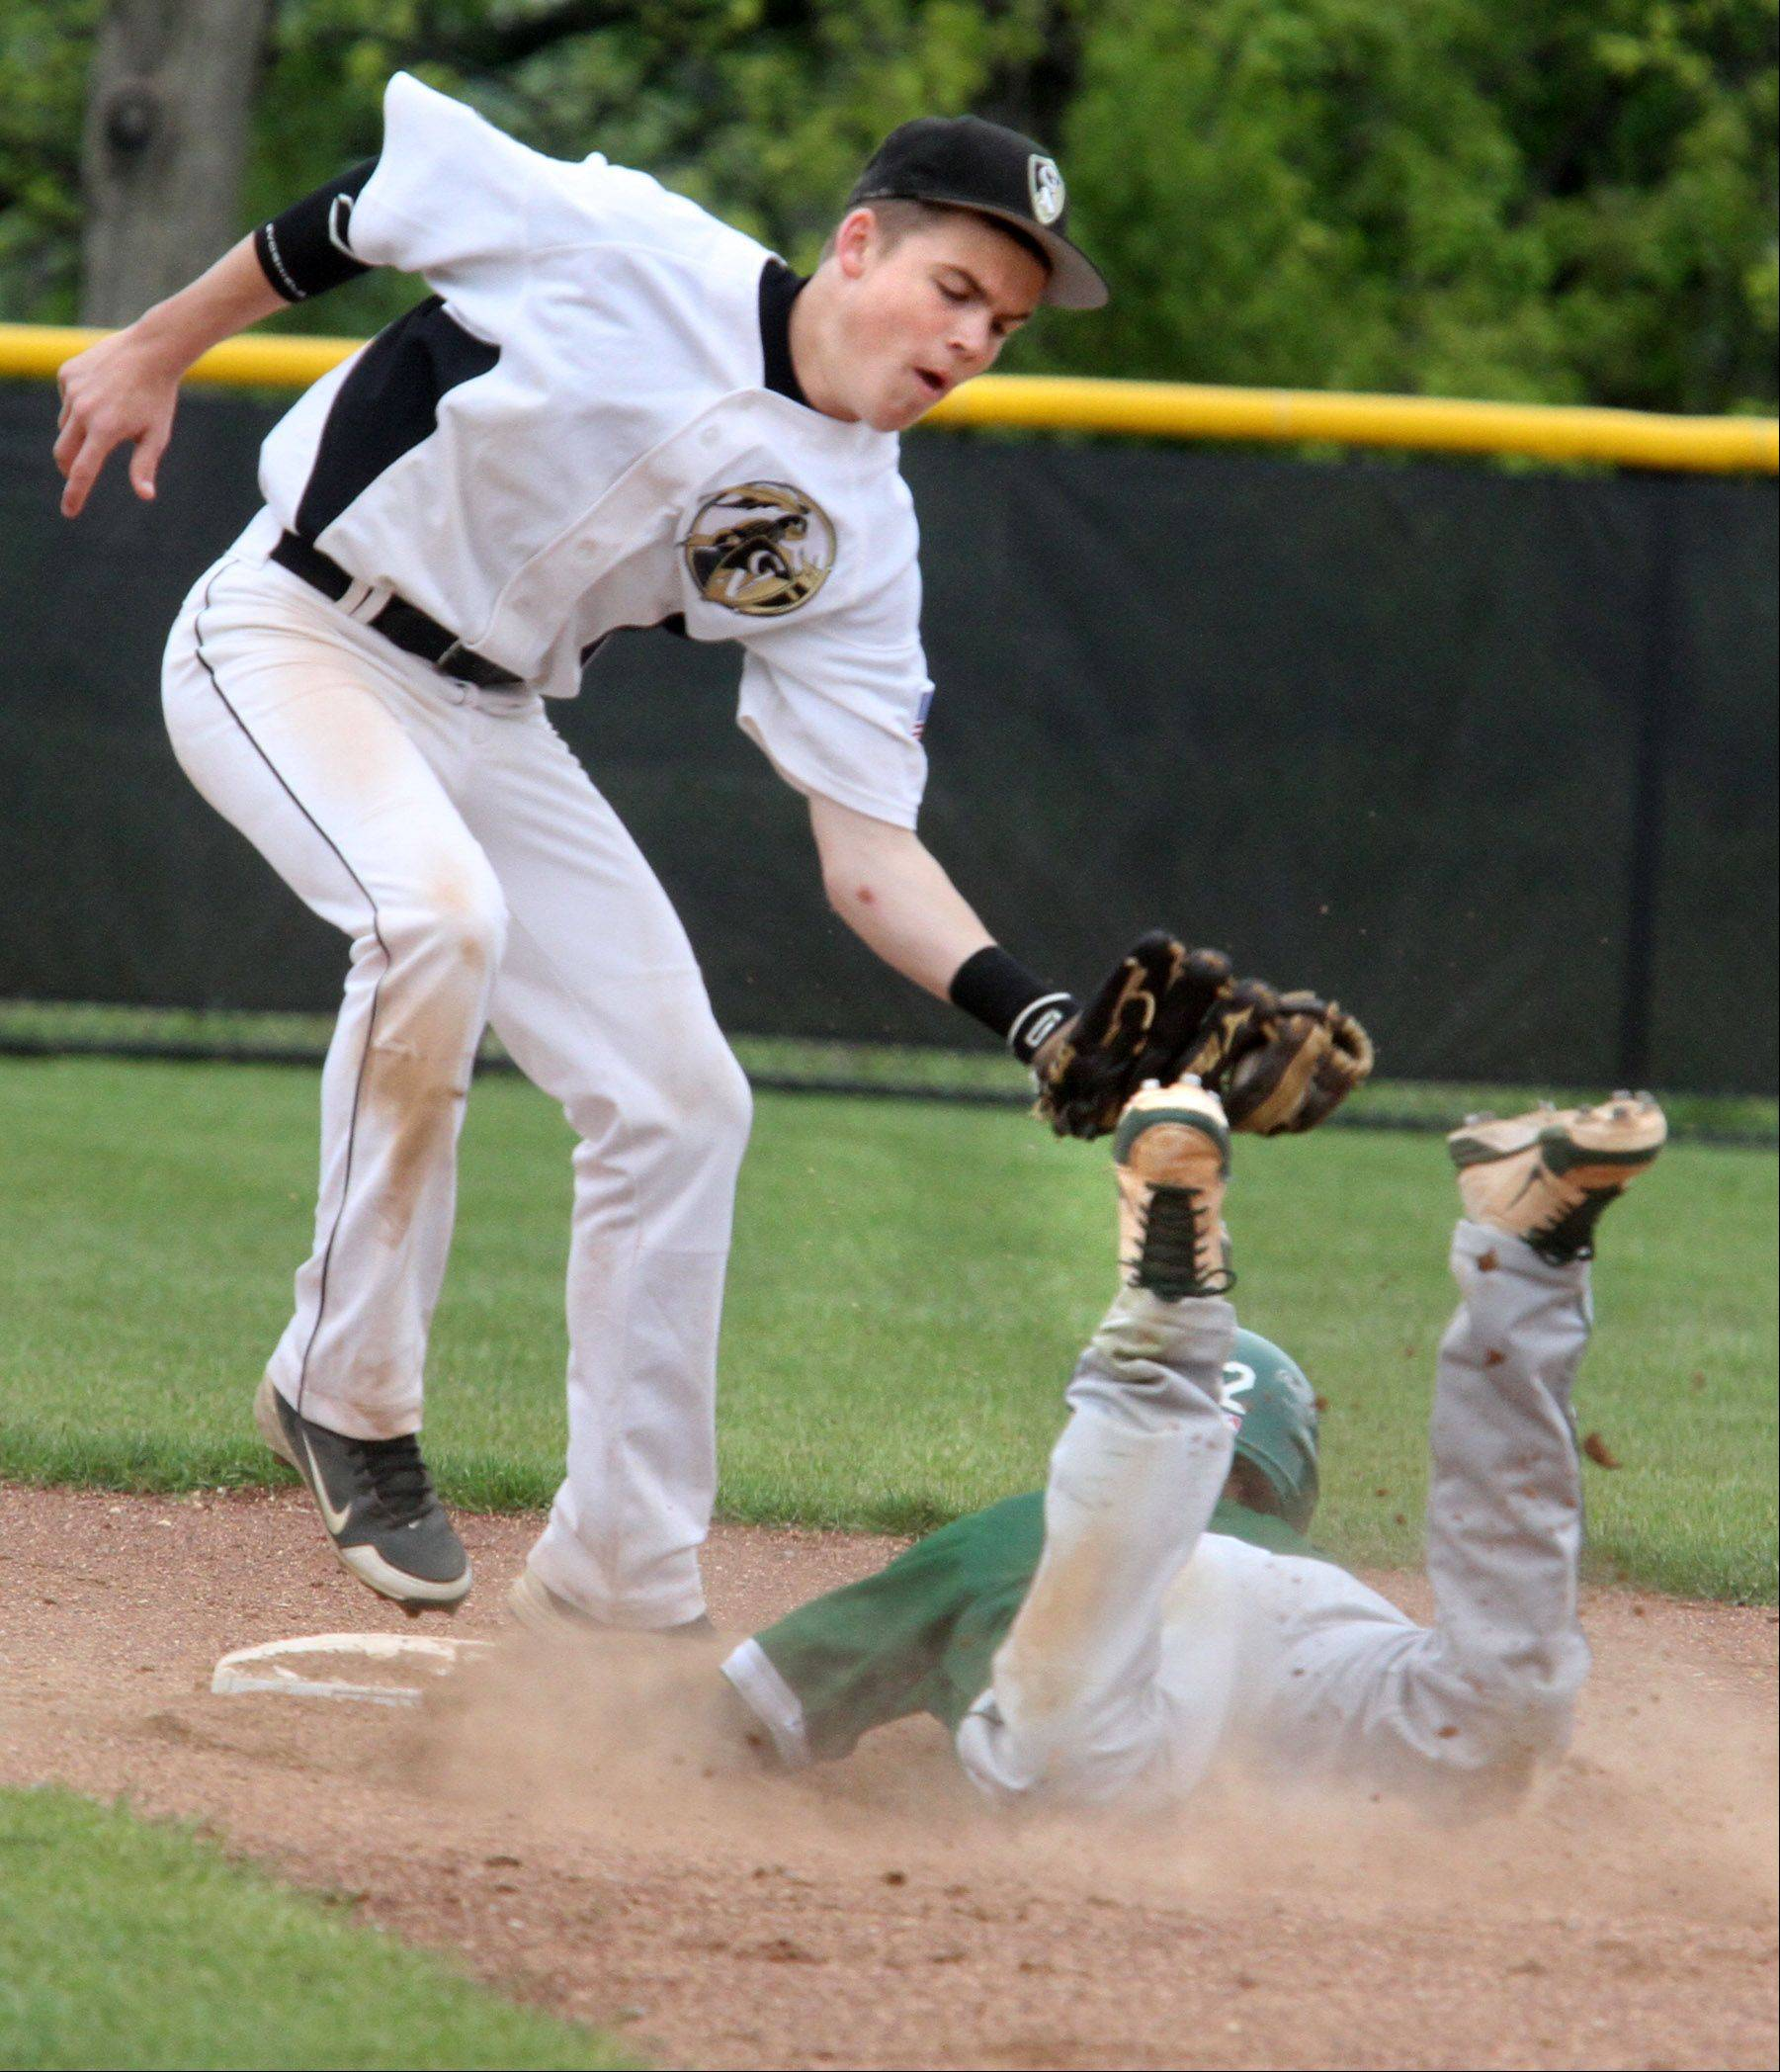 Grayslake North's Nick Carmody tags out Grayslake Central's Ryan Hamrick at second base last weekend. Carmody, the Knights' leadoff hitter, is hitting almost .400 this spring.